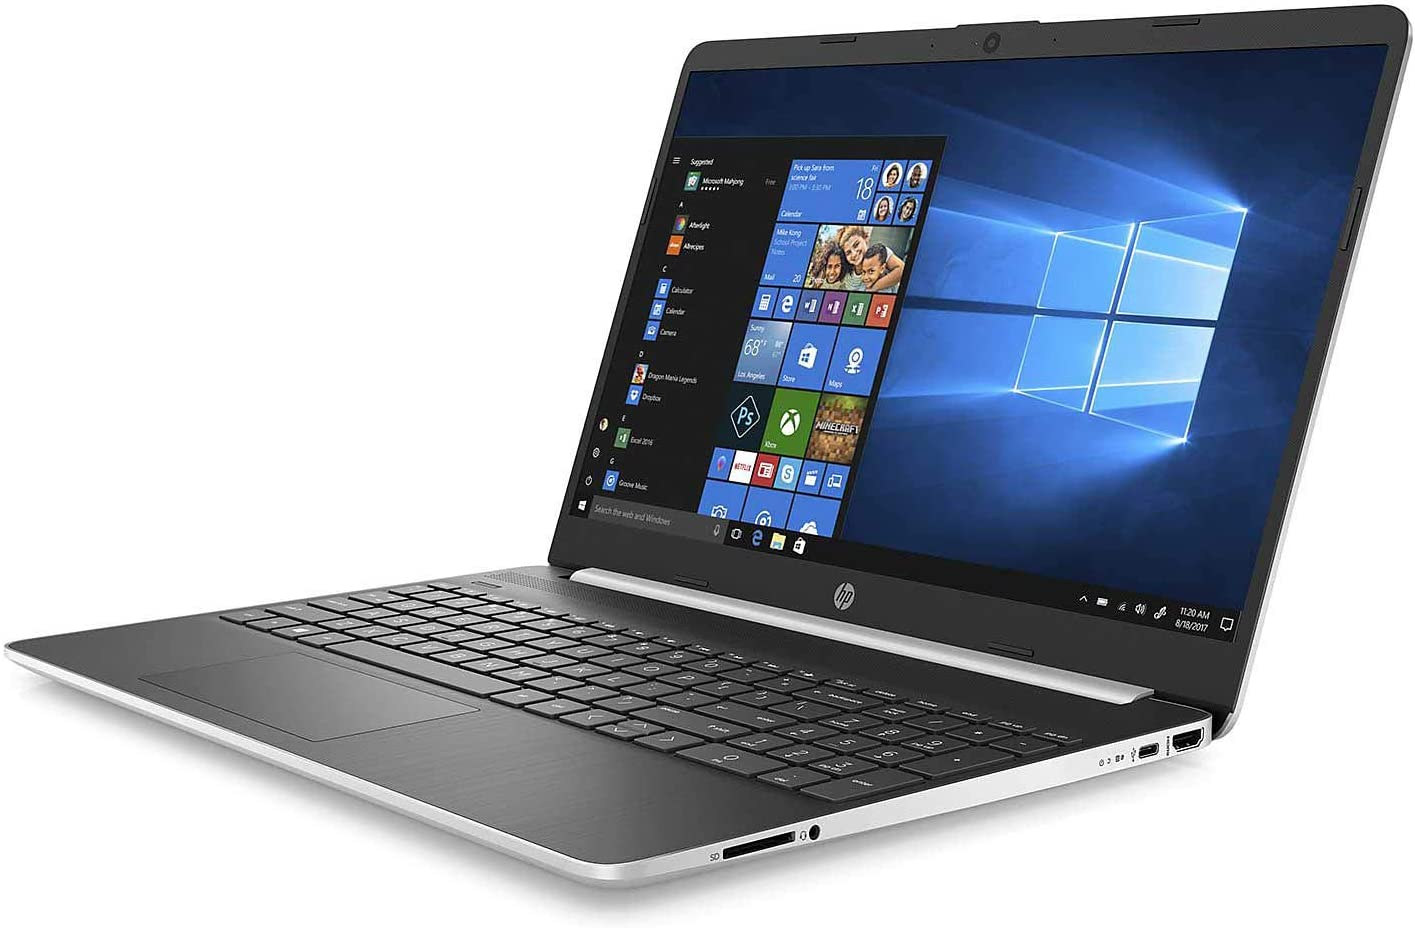 "HP 15.6"" FHD Home and Business Laptop Core i7-1065G7, 20GB RAM, 1TB SSD, Intel Iris Plus Graphics, 4 Core up to 3.90 GHz, USB-C, HDMI 1.4 4K Output, Keypad, Webcam, 1920x1080, Win 10"